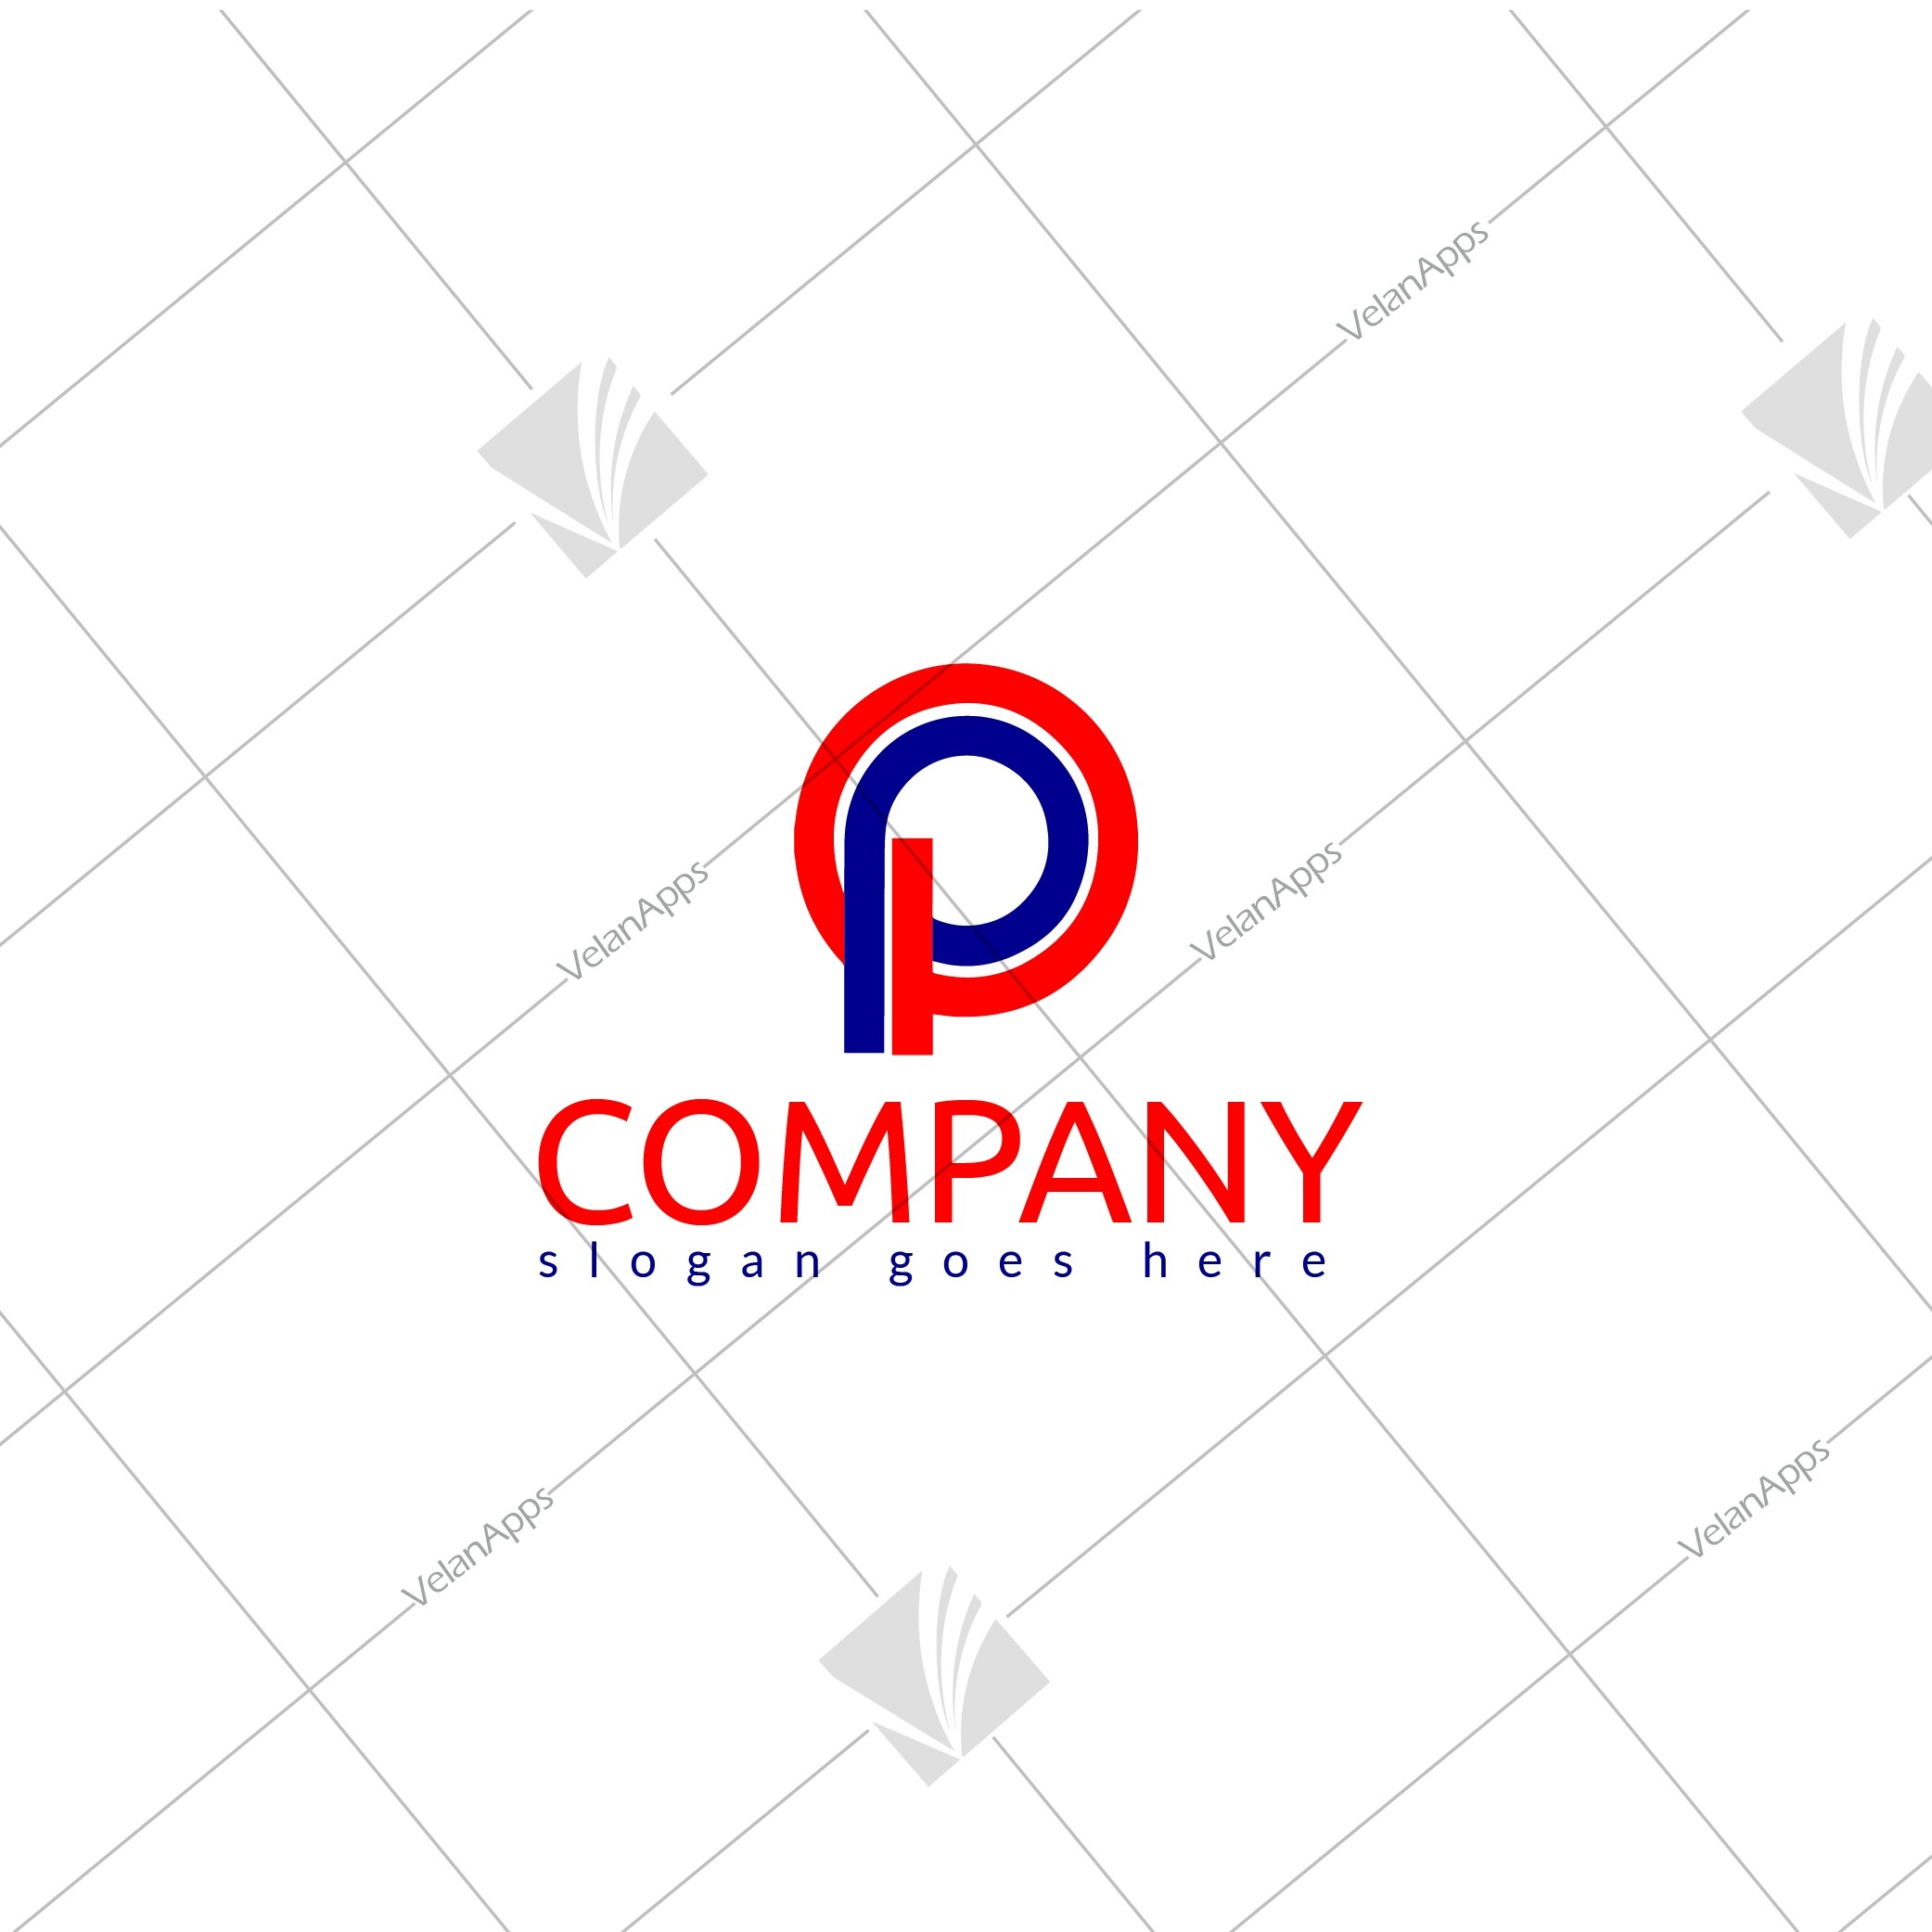 OP Lettered Company Logo